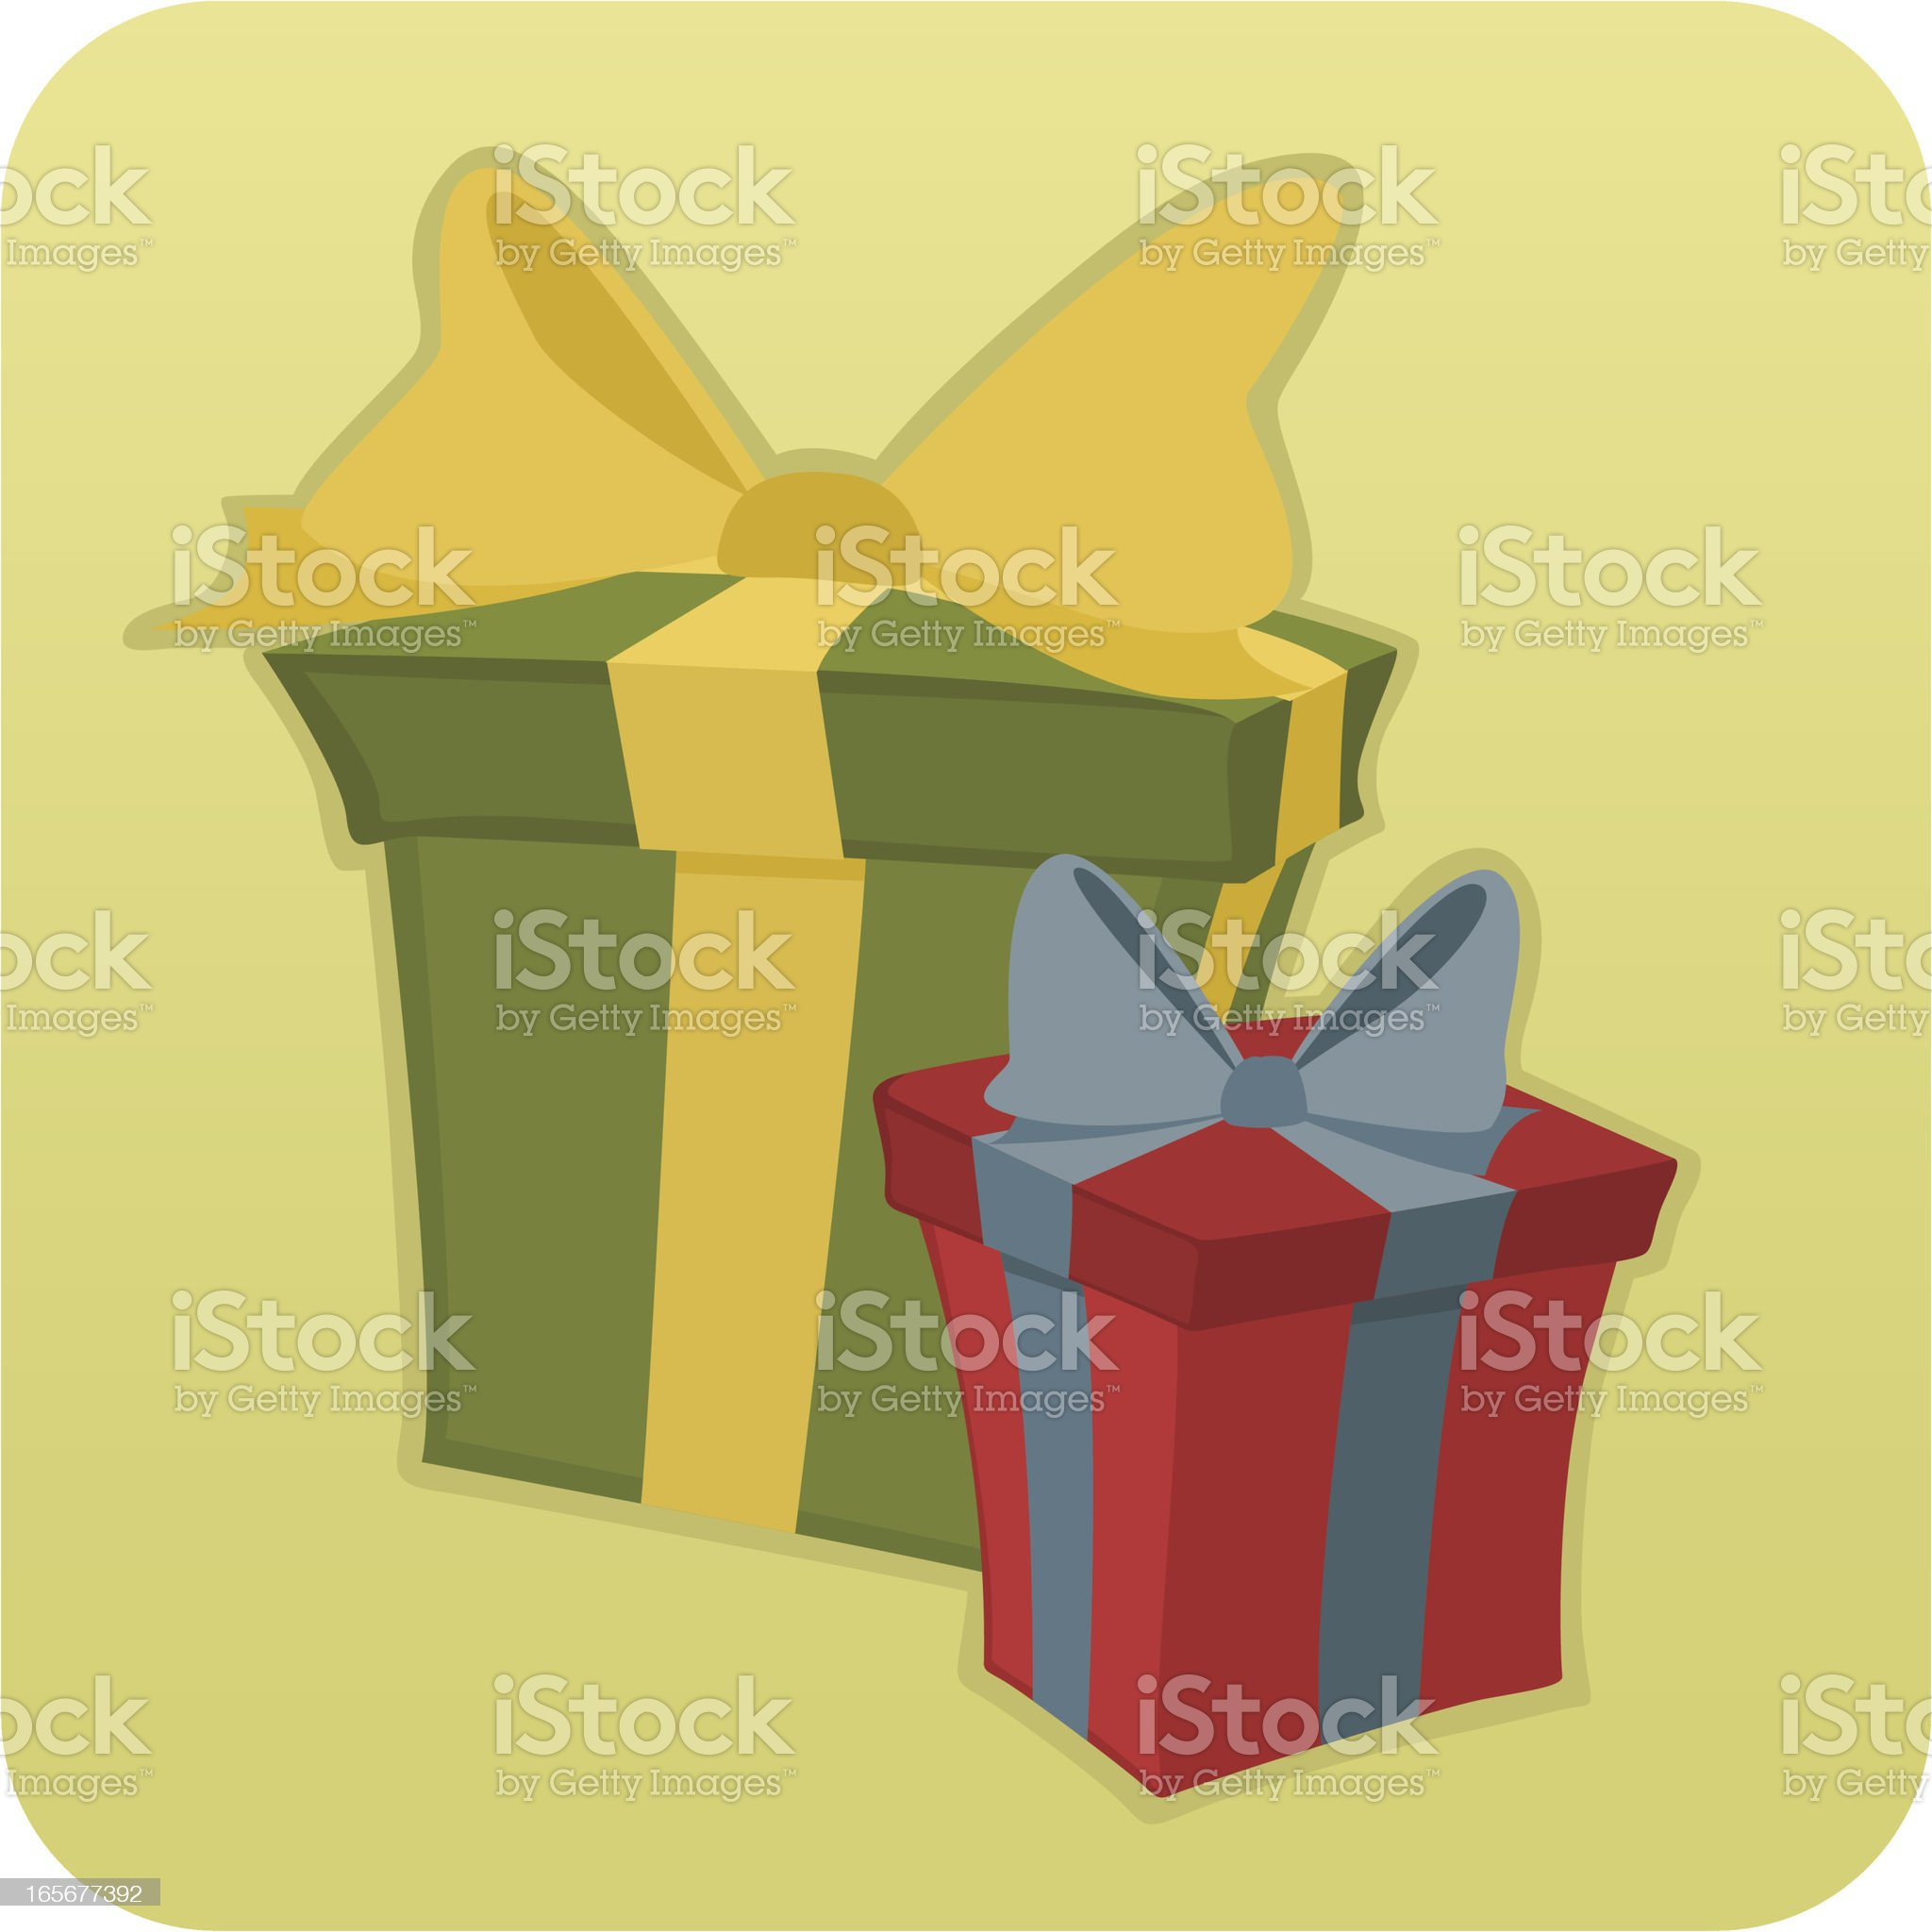 Two Cartoon Gift Boxes royalty-free stock vector art